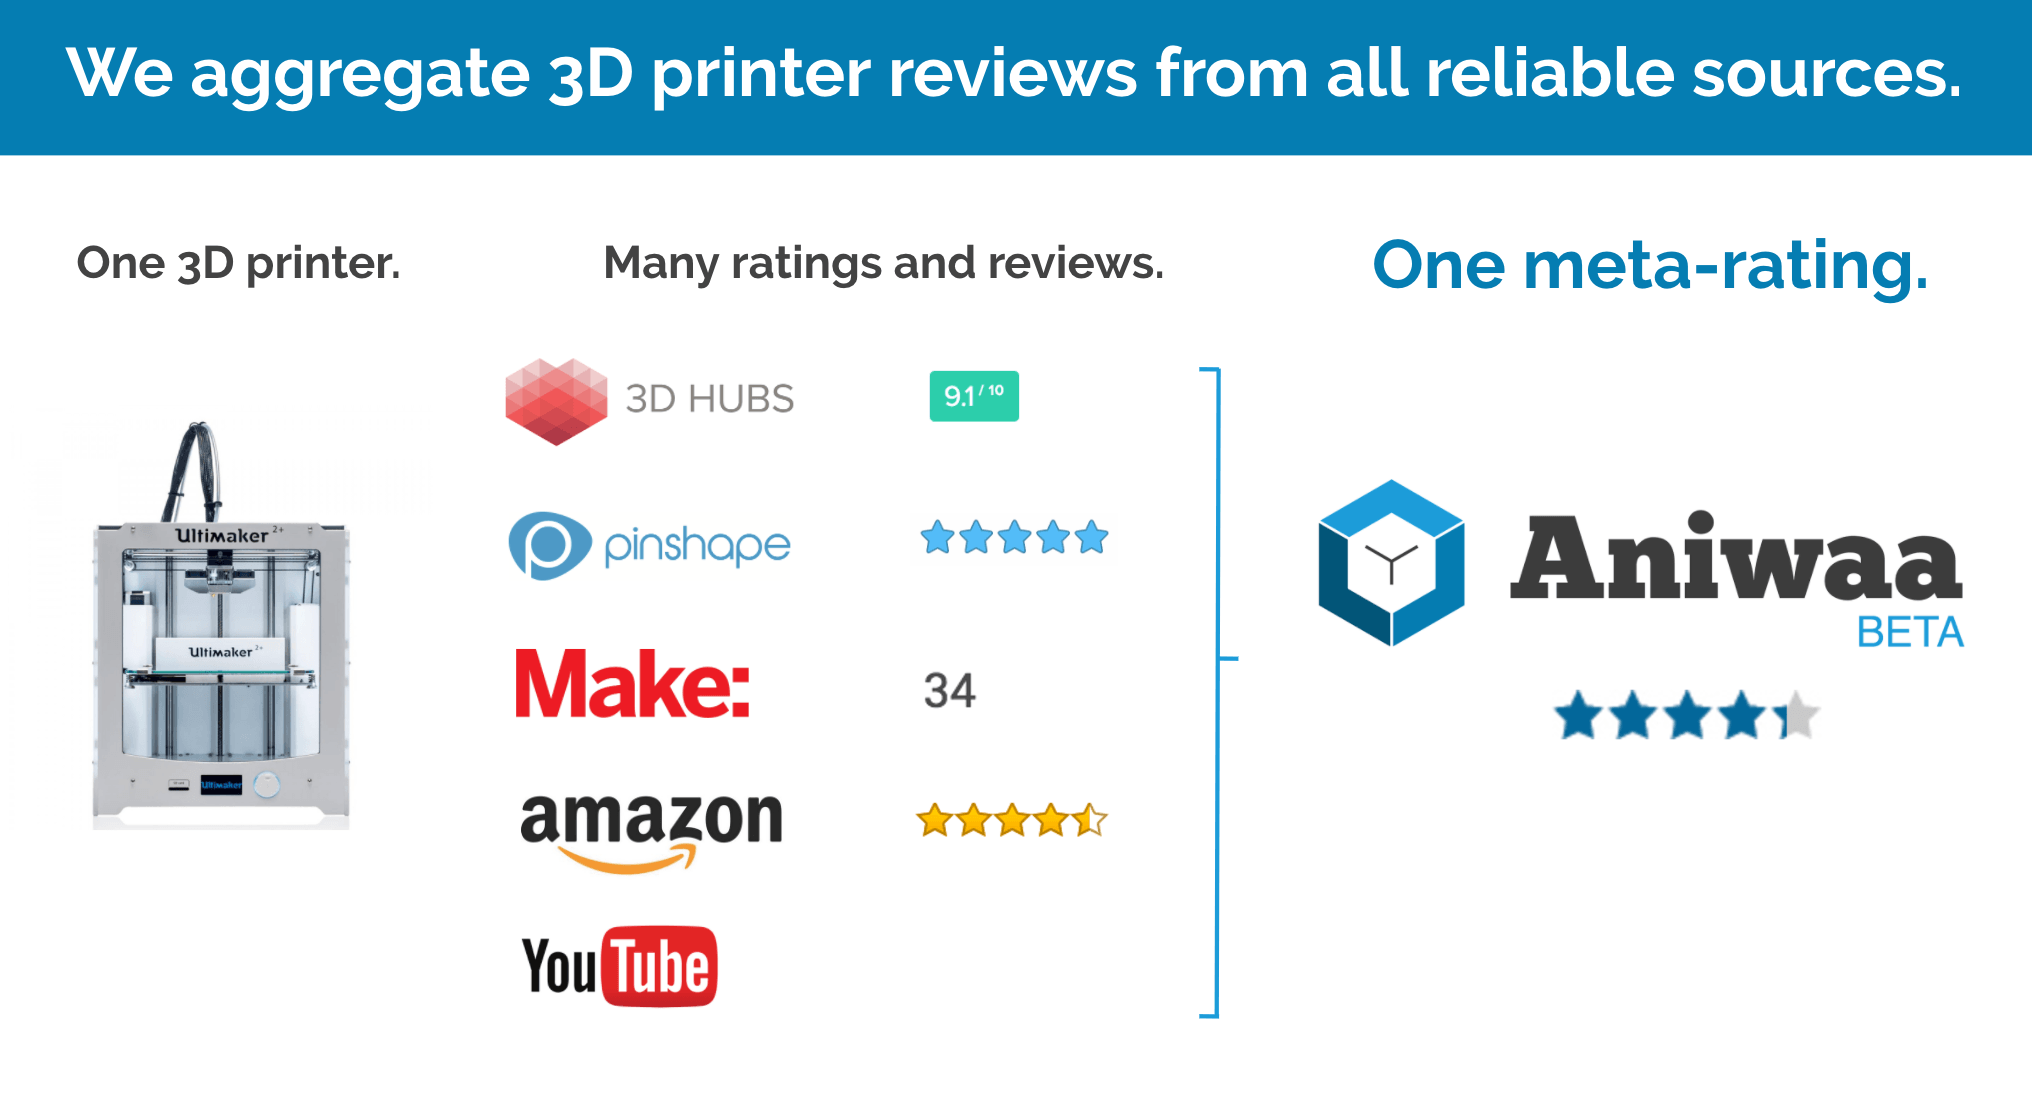 Aniwaa's meta-rating system for 3D printers.